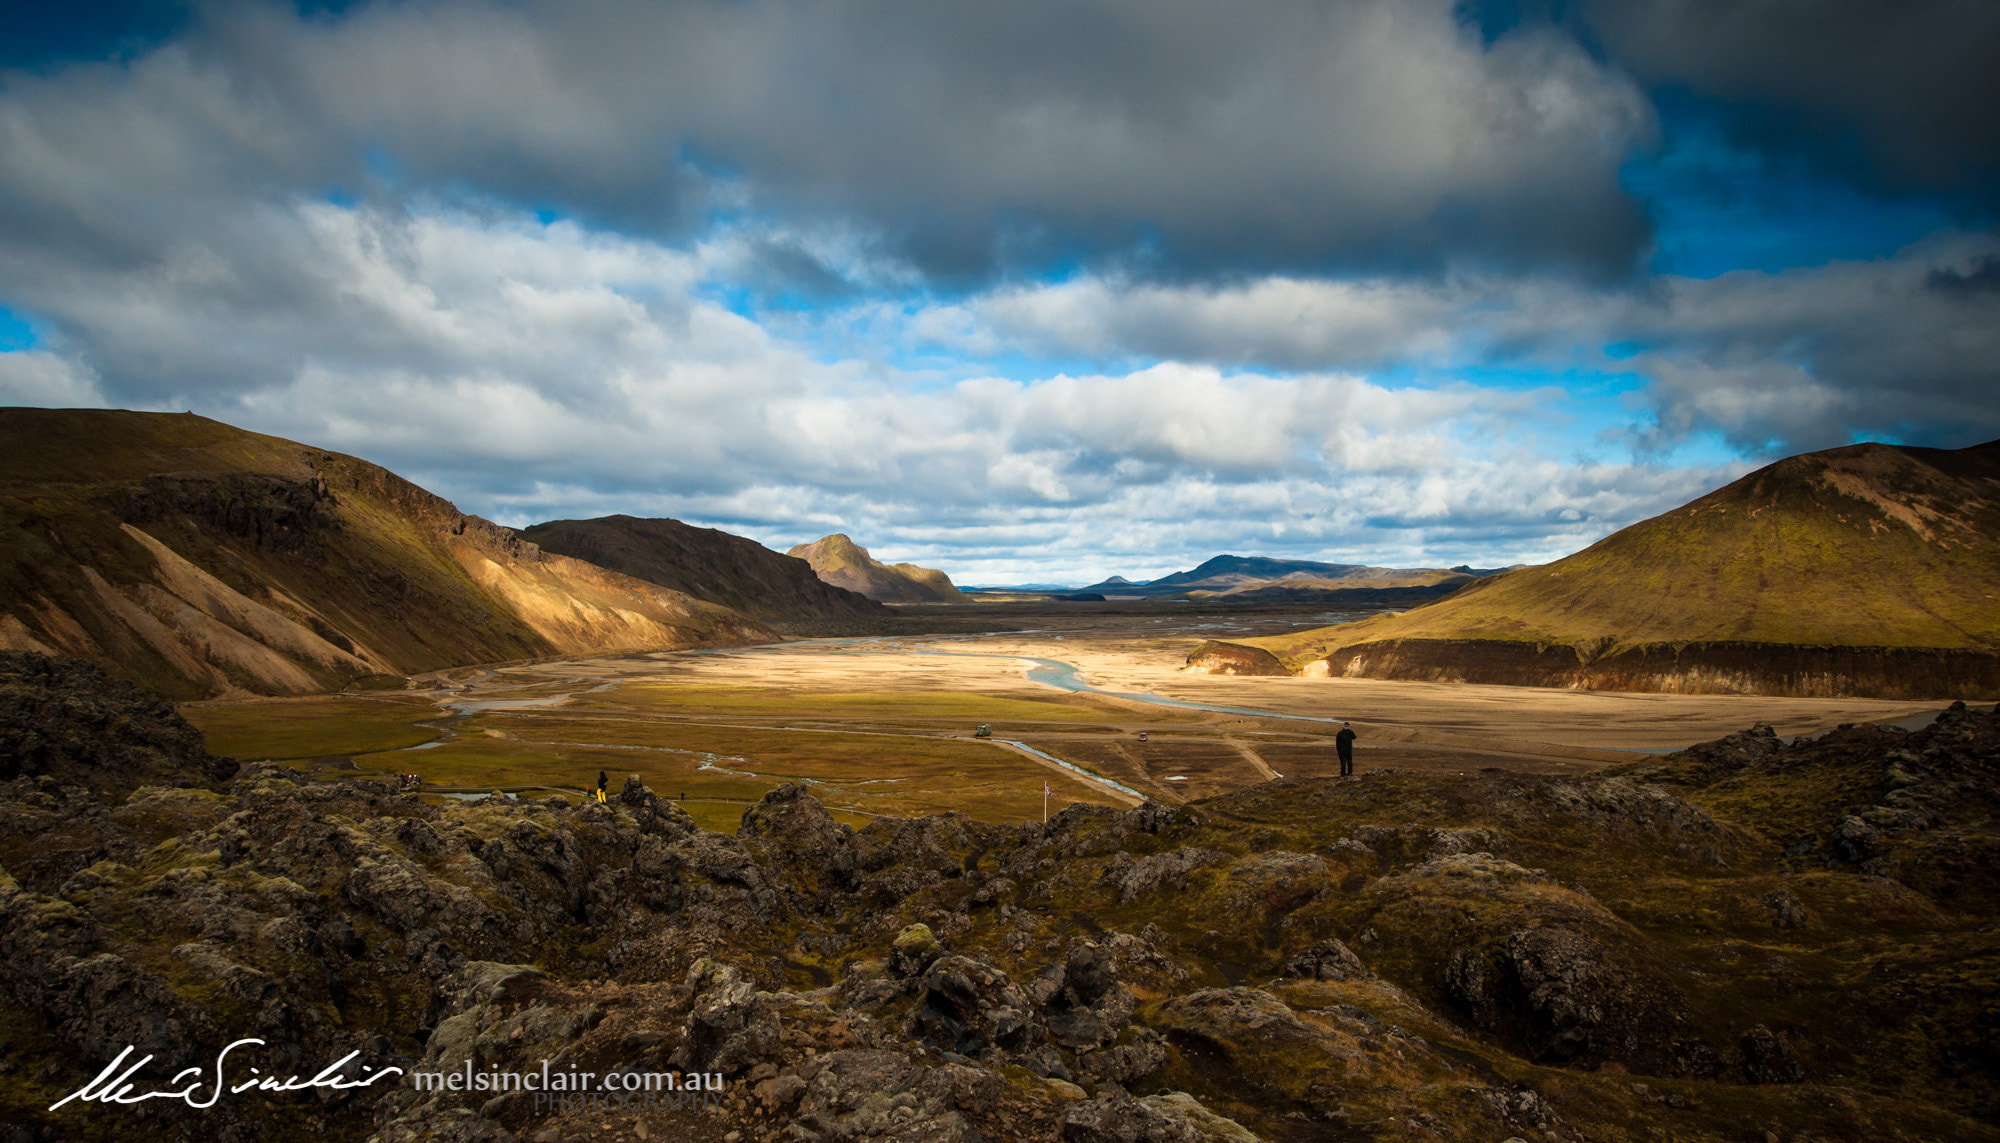 Photograph Looking Over Landmannalaugar by Mel Sinclair on 500px